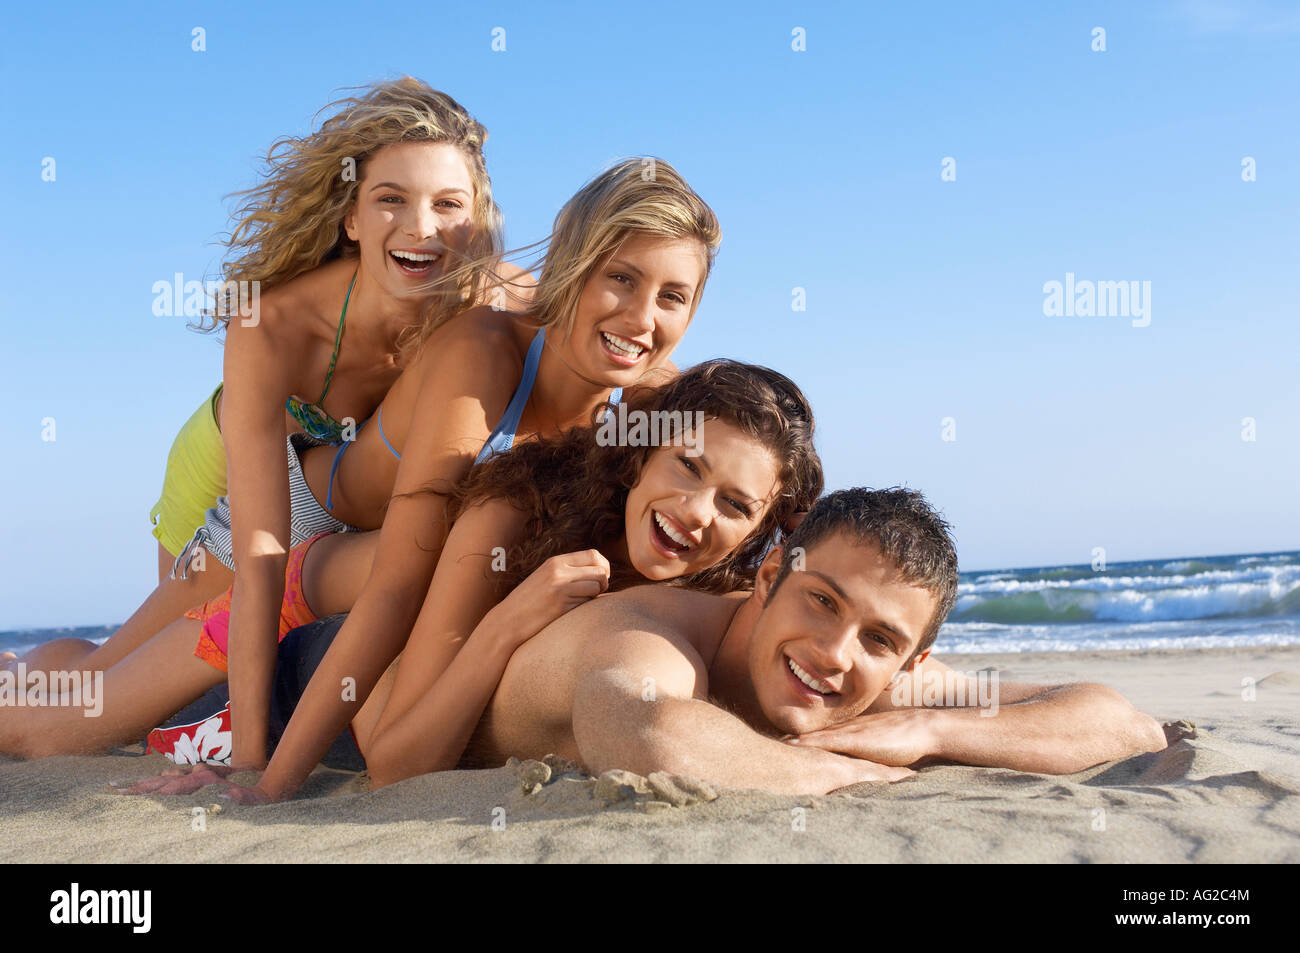 Three young women lying on man on beach, portrait, ground view - Stock Image